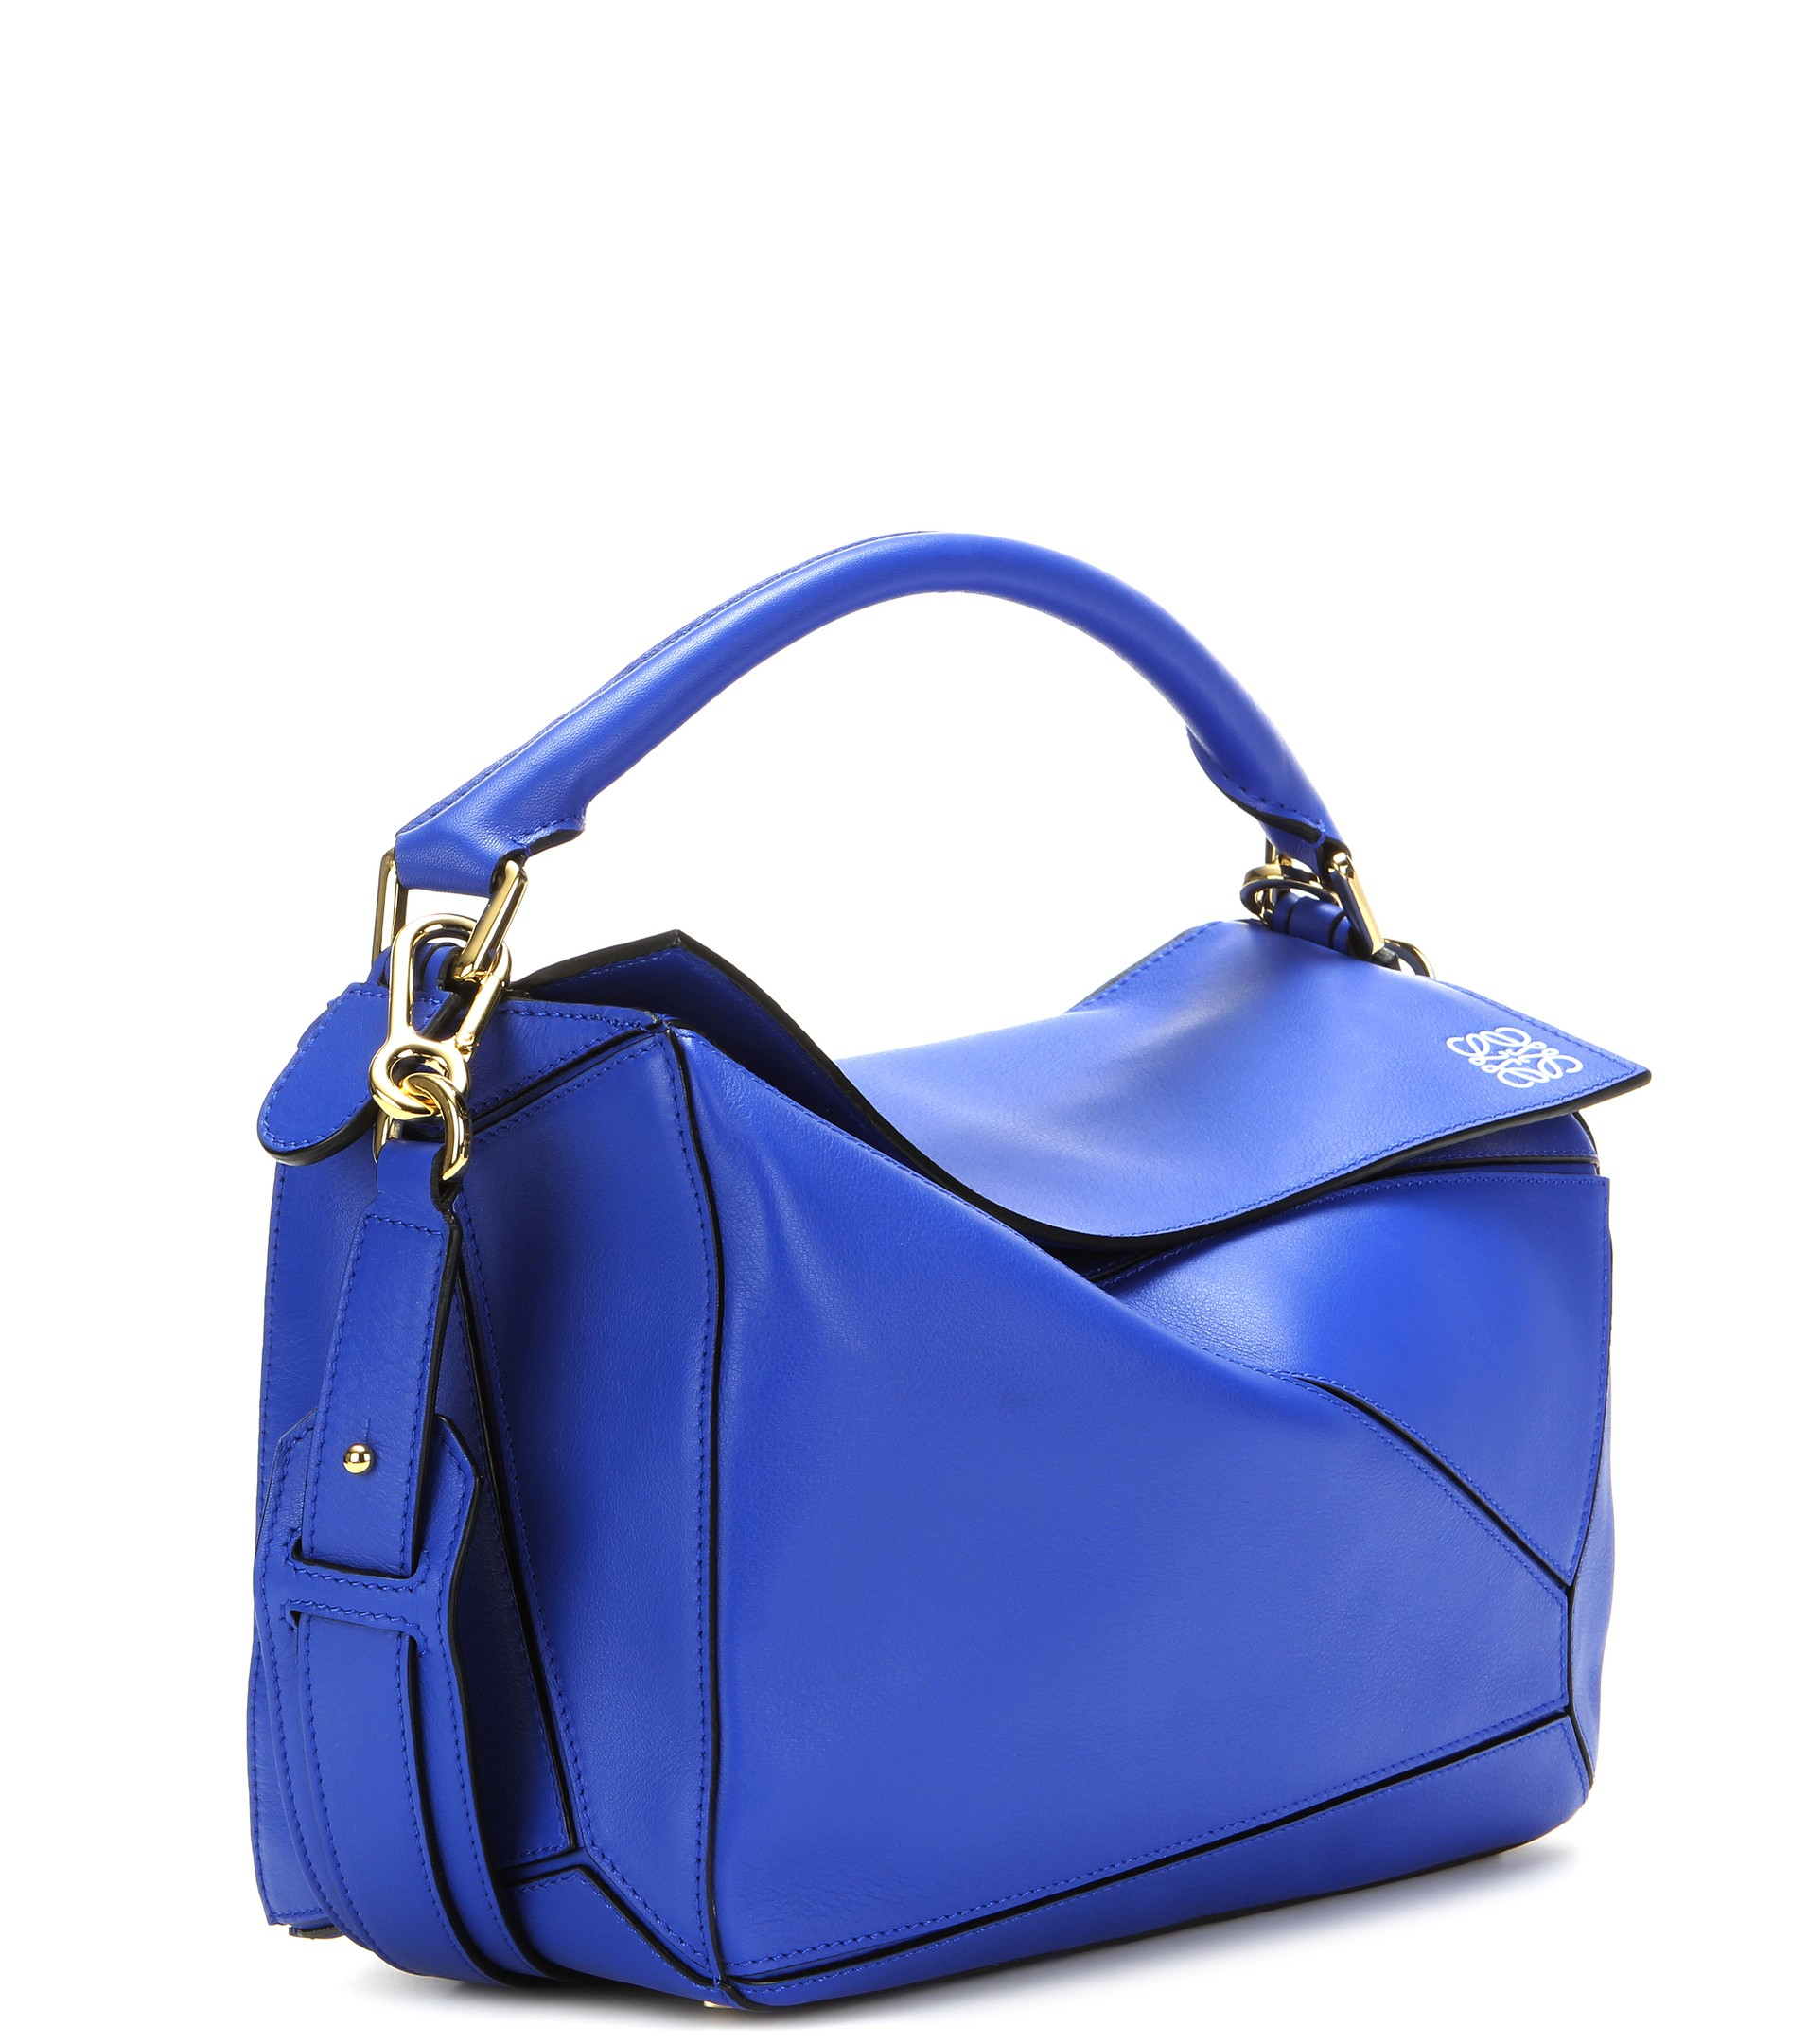 Loewe Puzzle Leather Shoulder Bag in Blue